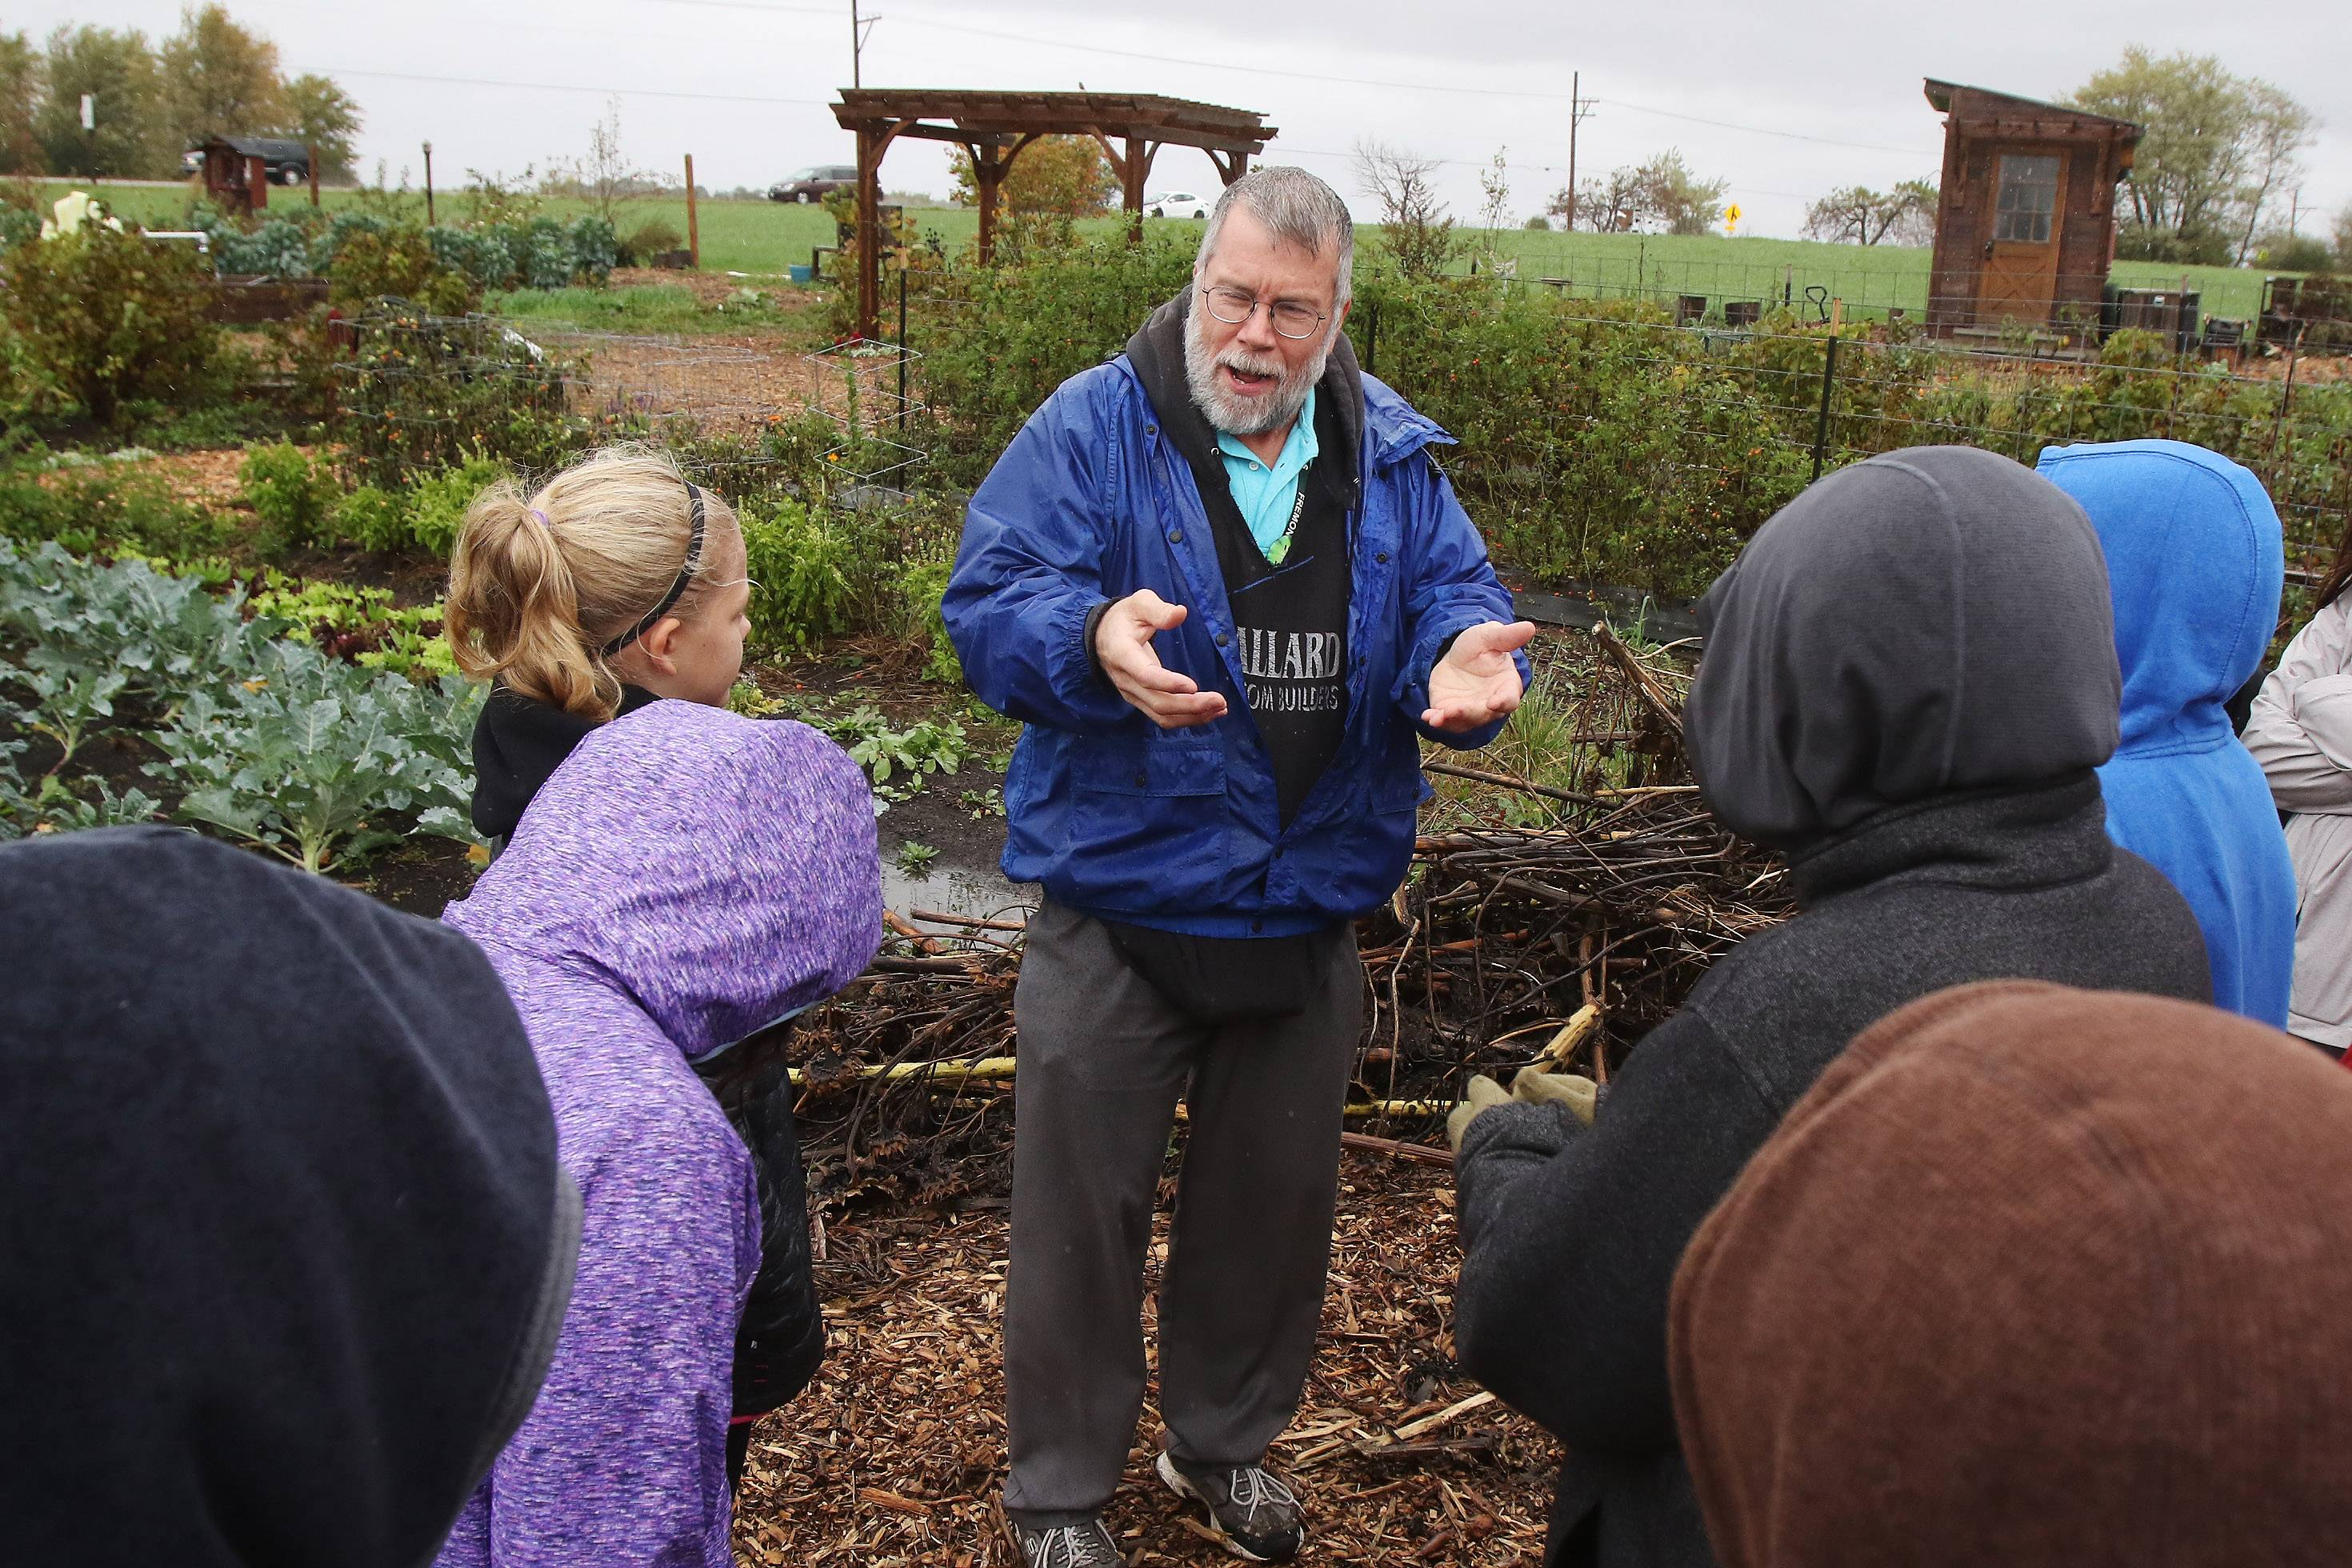 Fremont Middle School sixth-grade teacher Don Doll talks to his students about the ways to improve the Fremont Township Community Garden near Mundelein on Tuesday. The students plan to install signs and work on a pollinator garden.